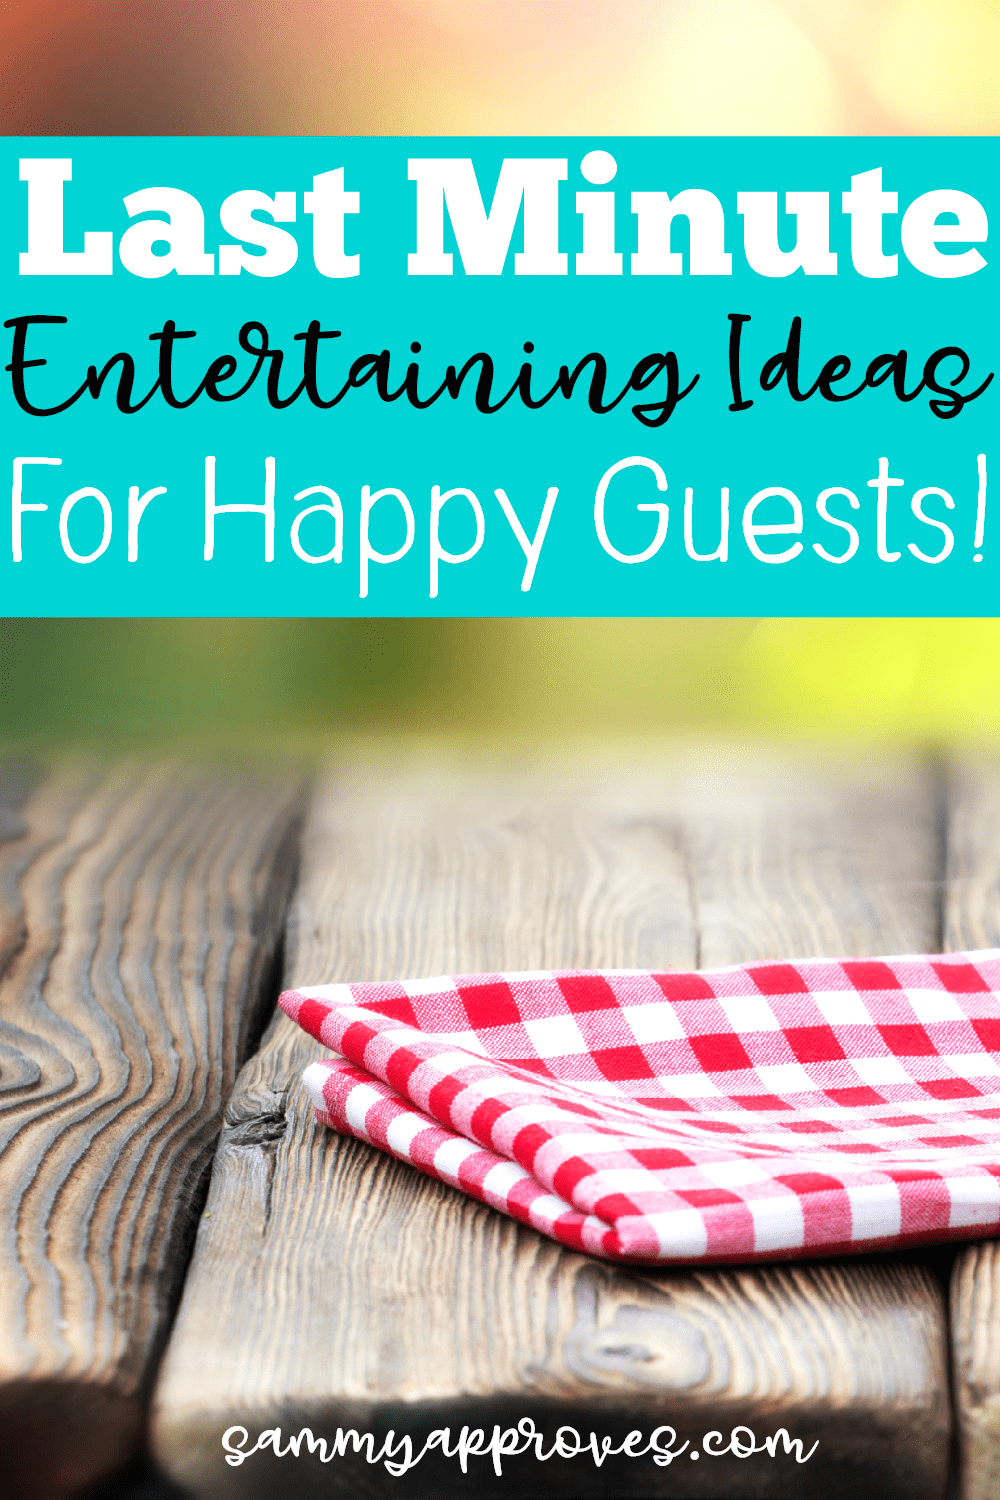 Last Minute Entertaining Ideas for Happy Guests! - Plan Without Stress